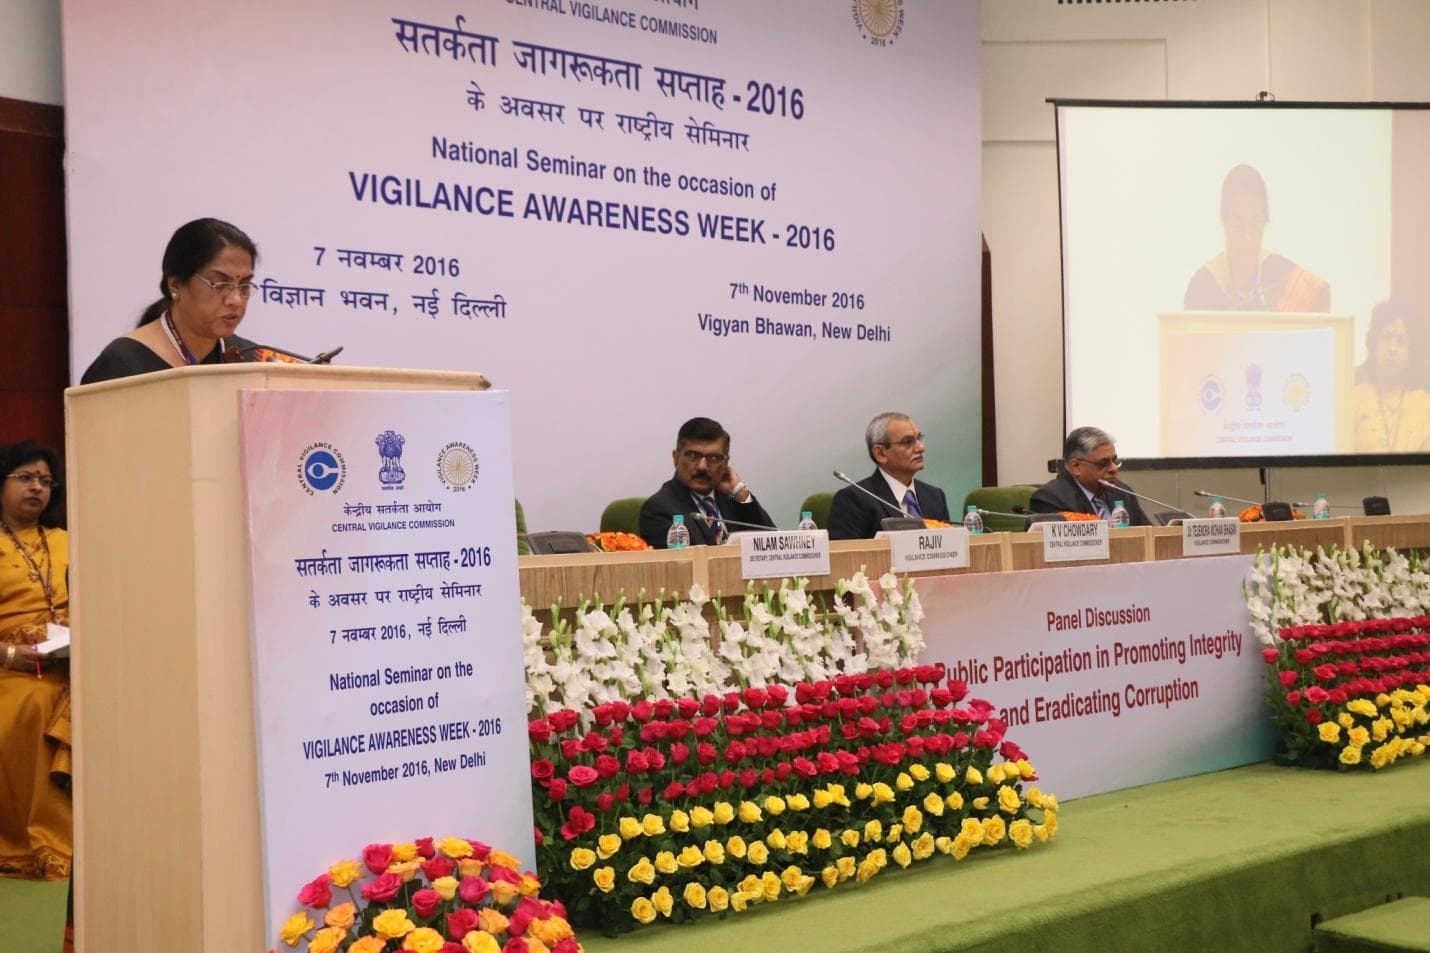 National Seminar VIGILANCE AWARENESS WEEK-2016 photo 6